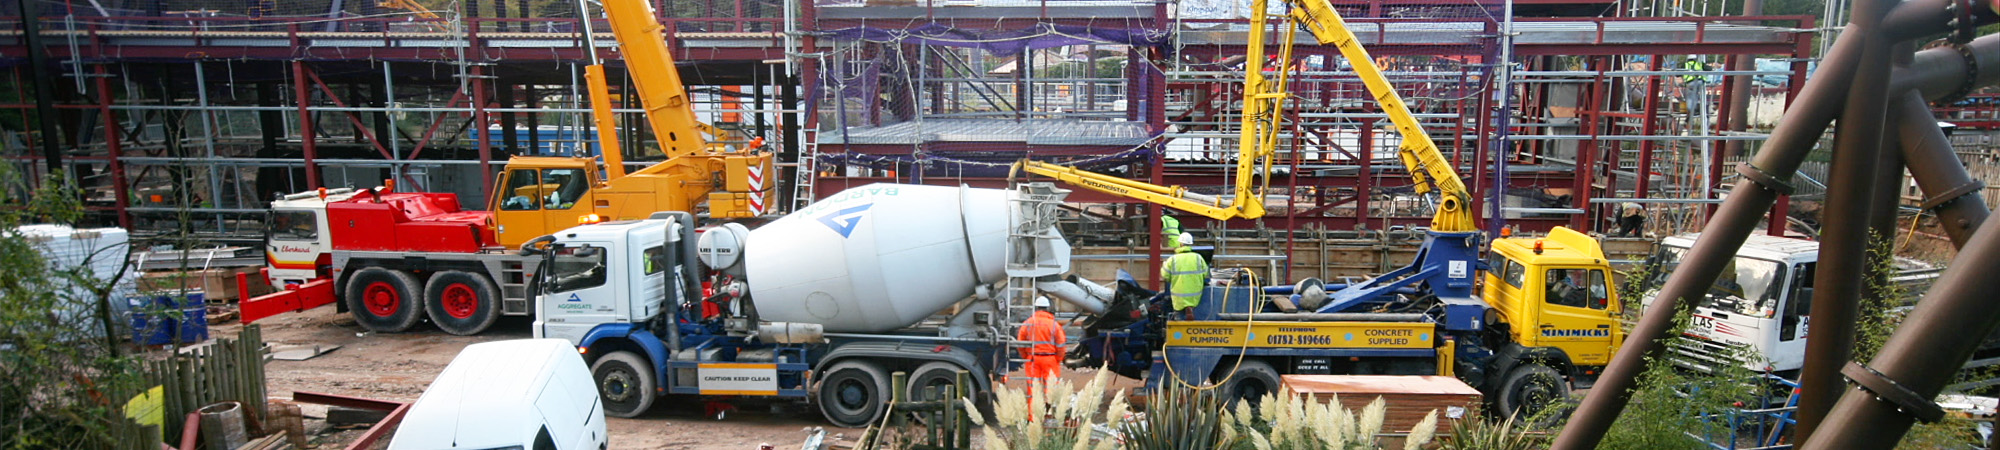 Cement pouring at Th13teen